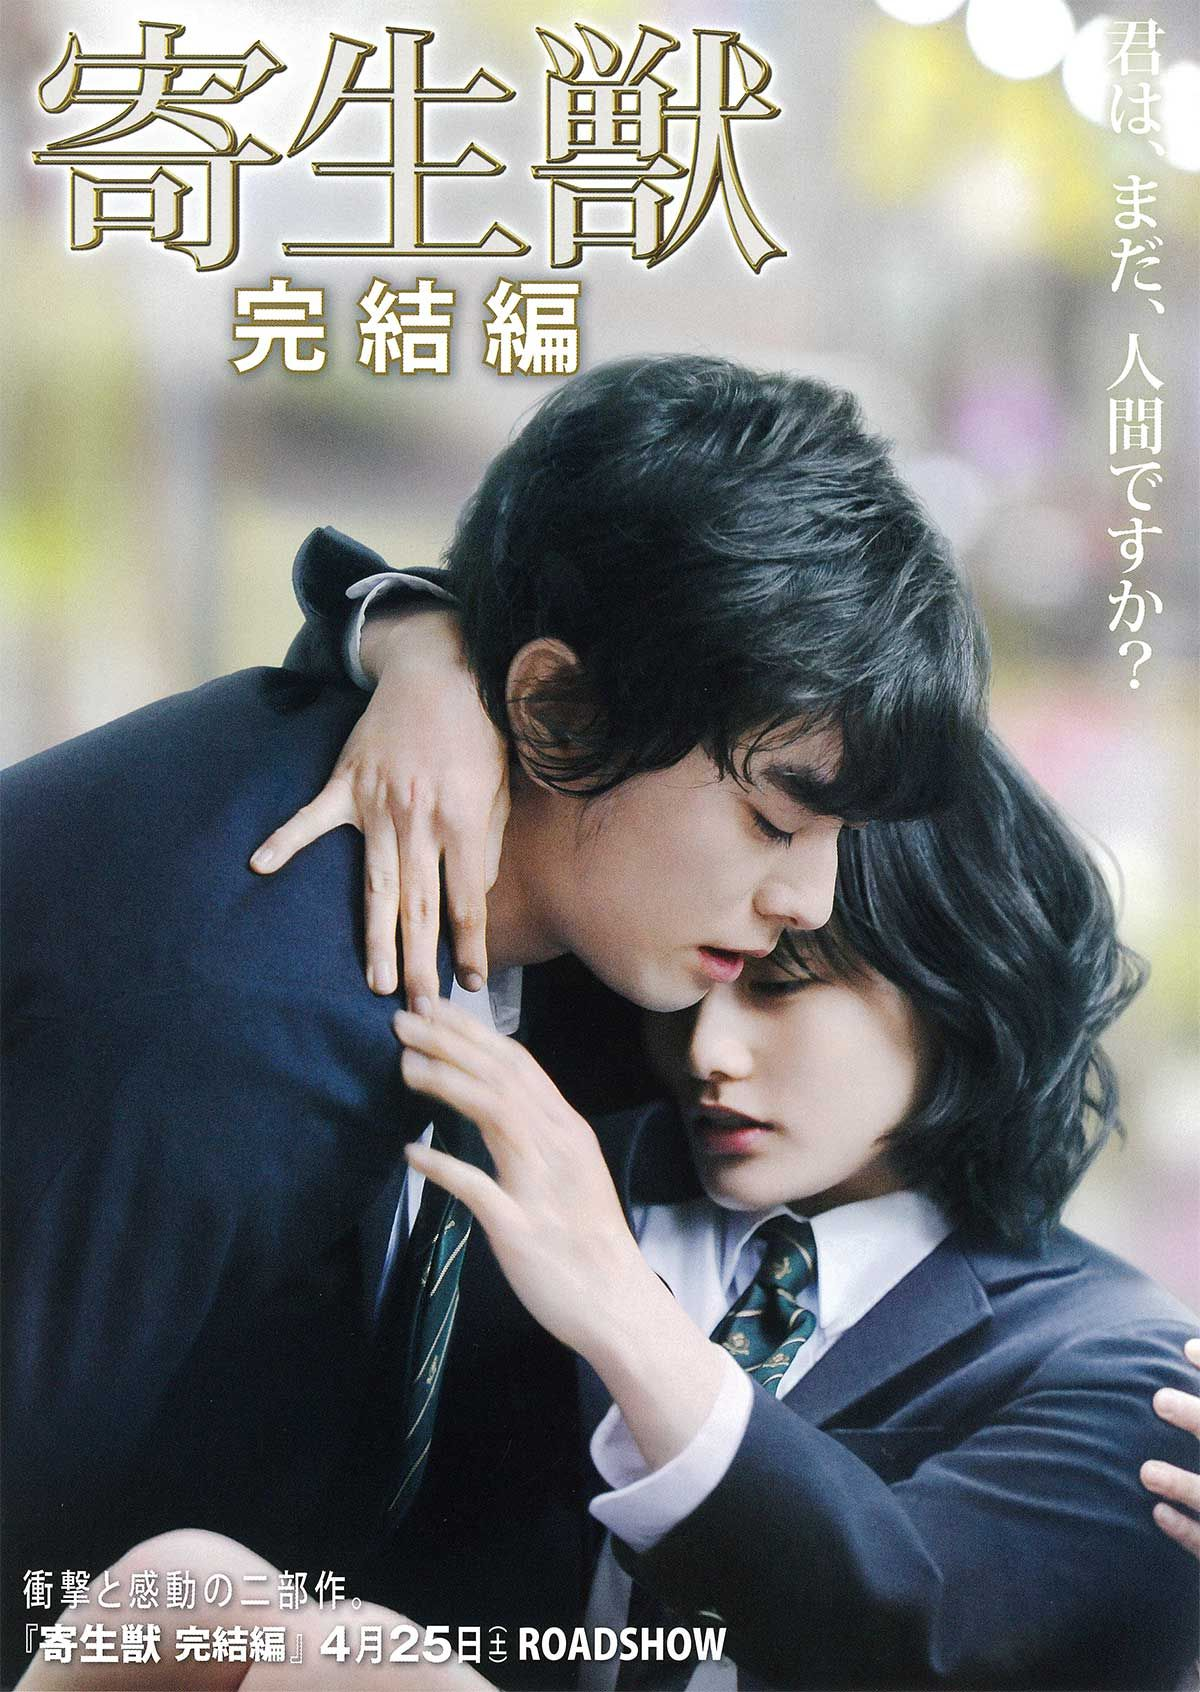 Pin by Charlene Chang on After work Japanese movies